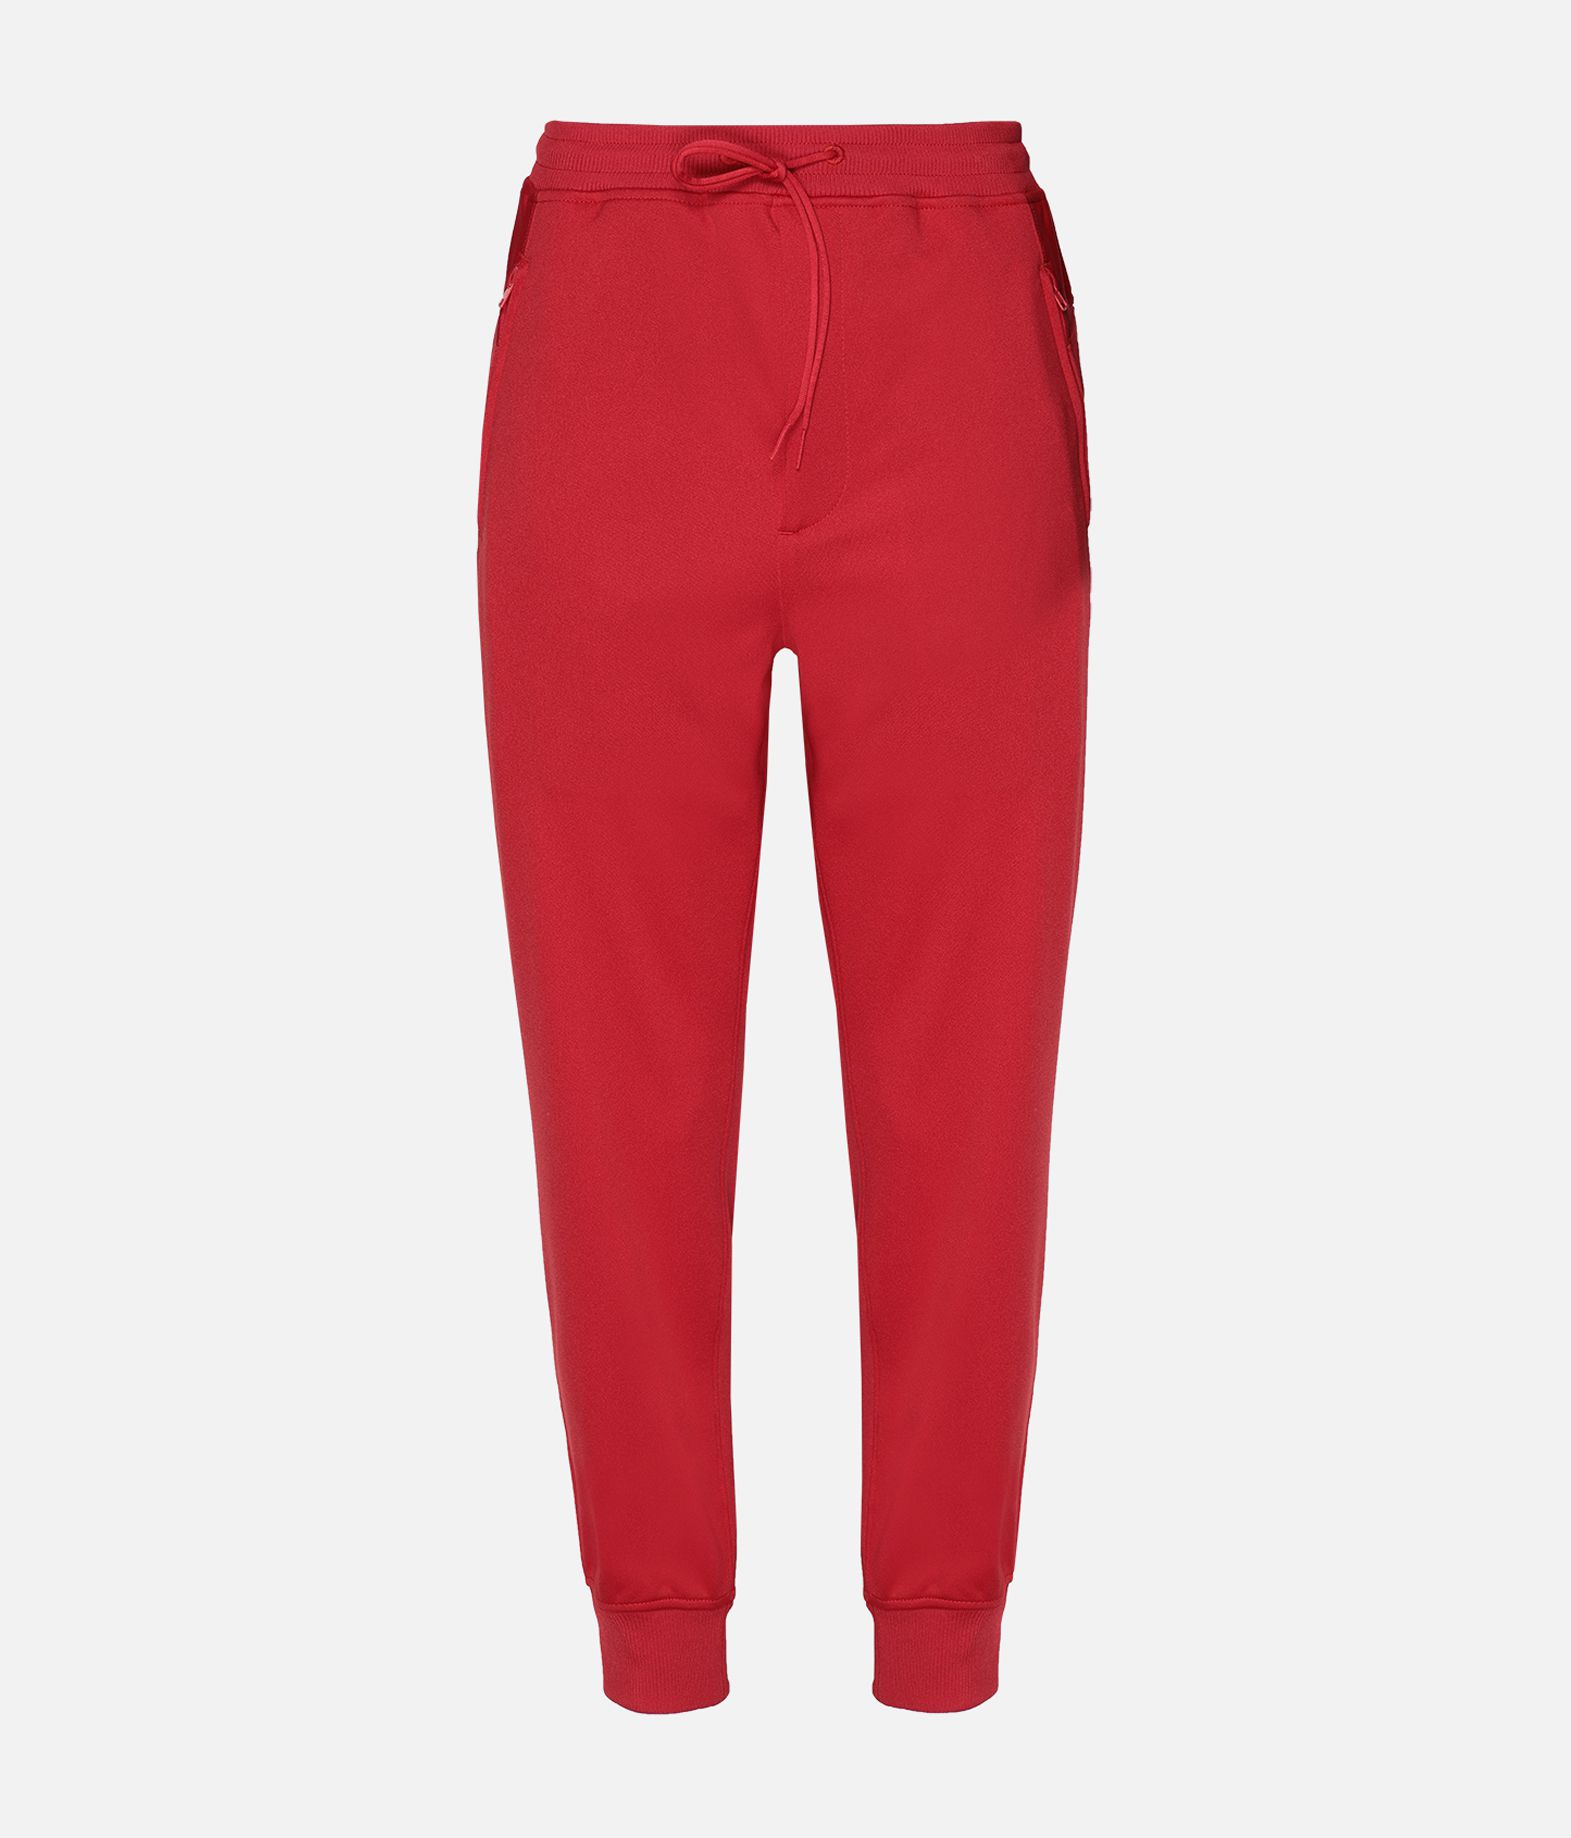 Y-3 Y-3 Classic Track Pants Casual pants Woman f